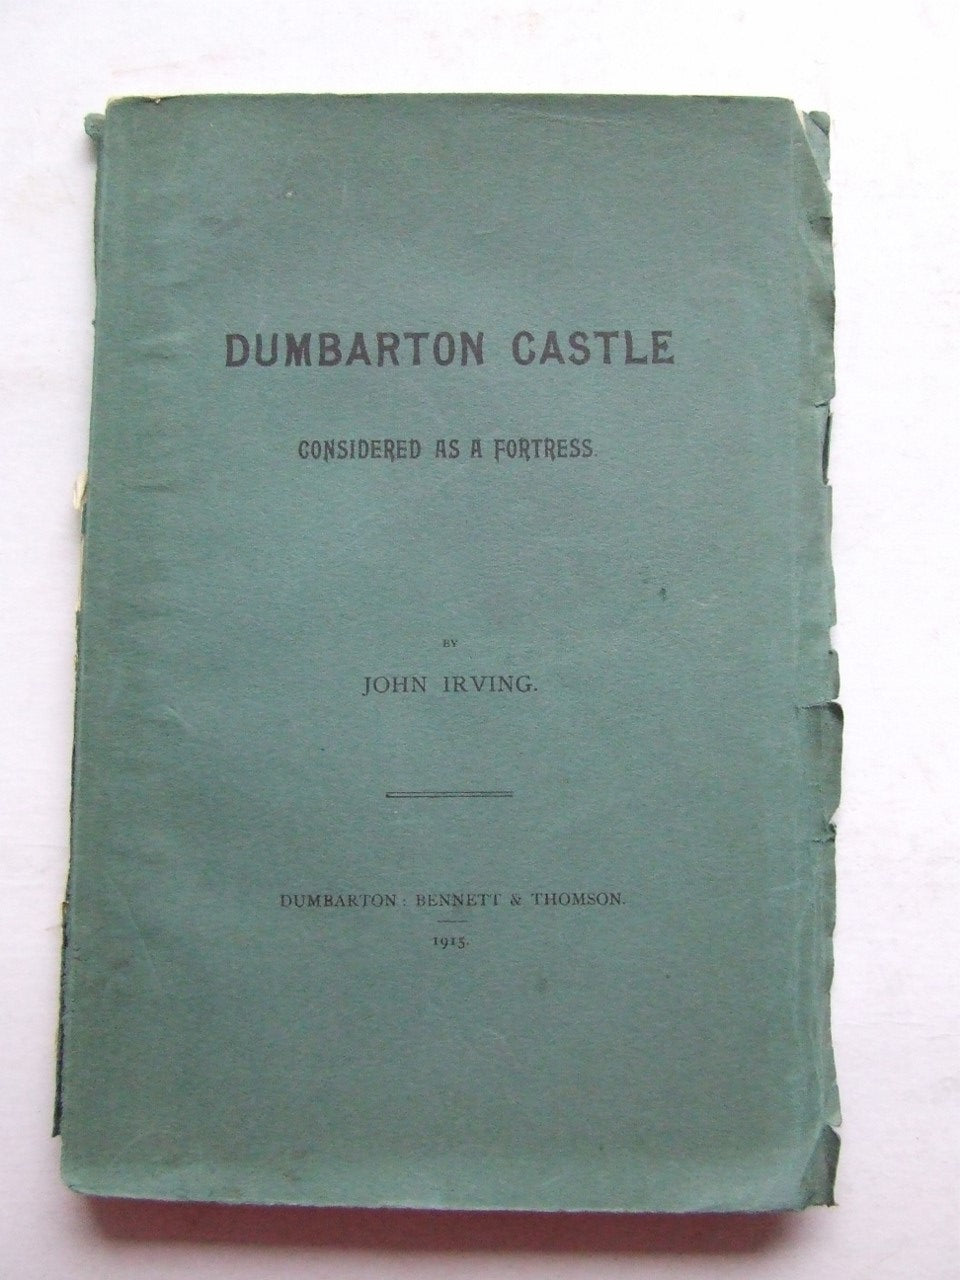 Dumbarton Castle considered as a fortress